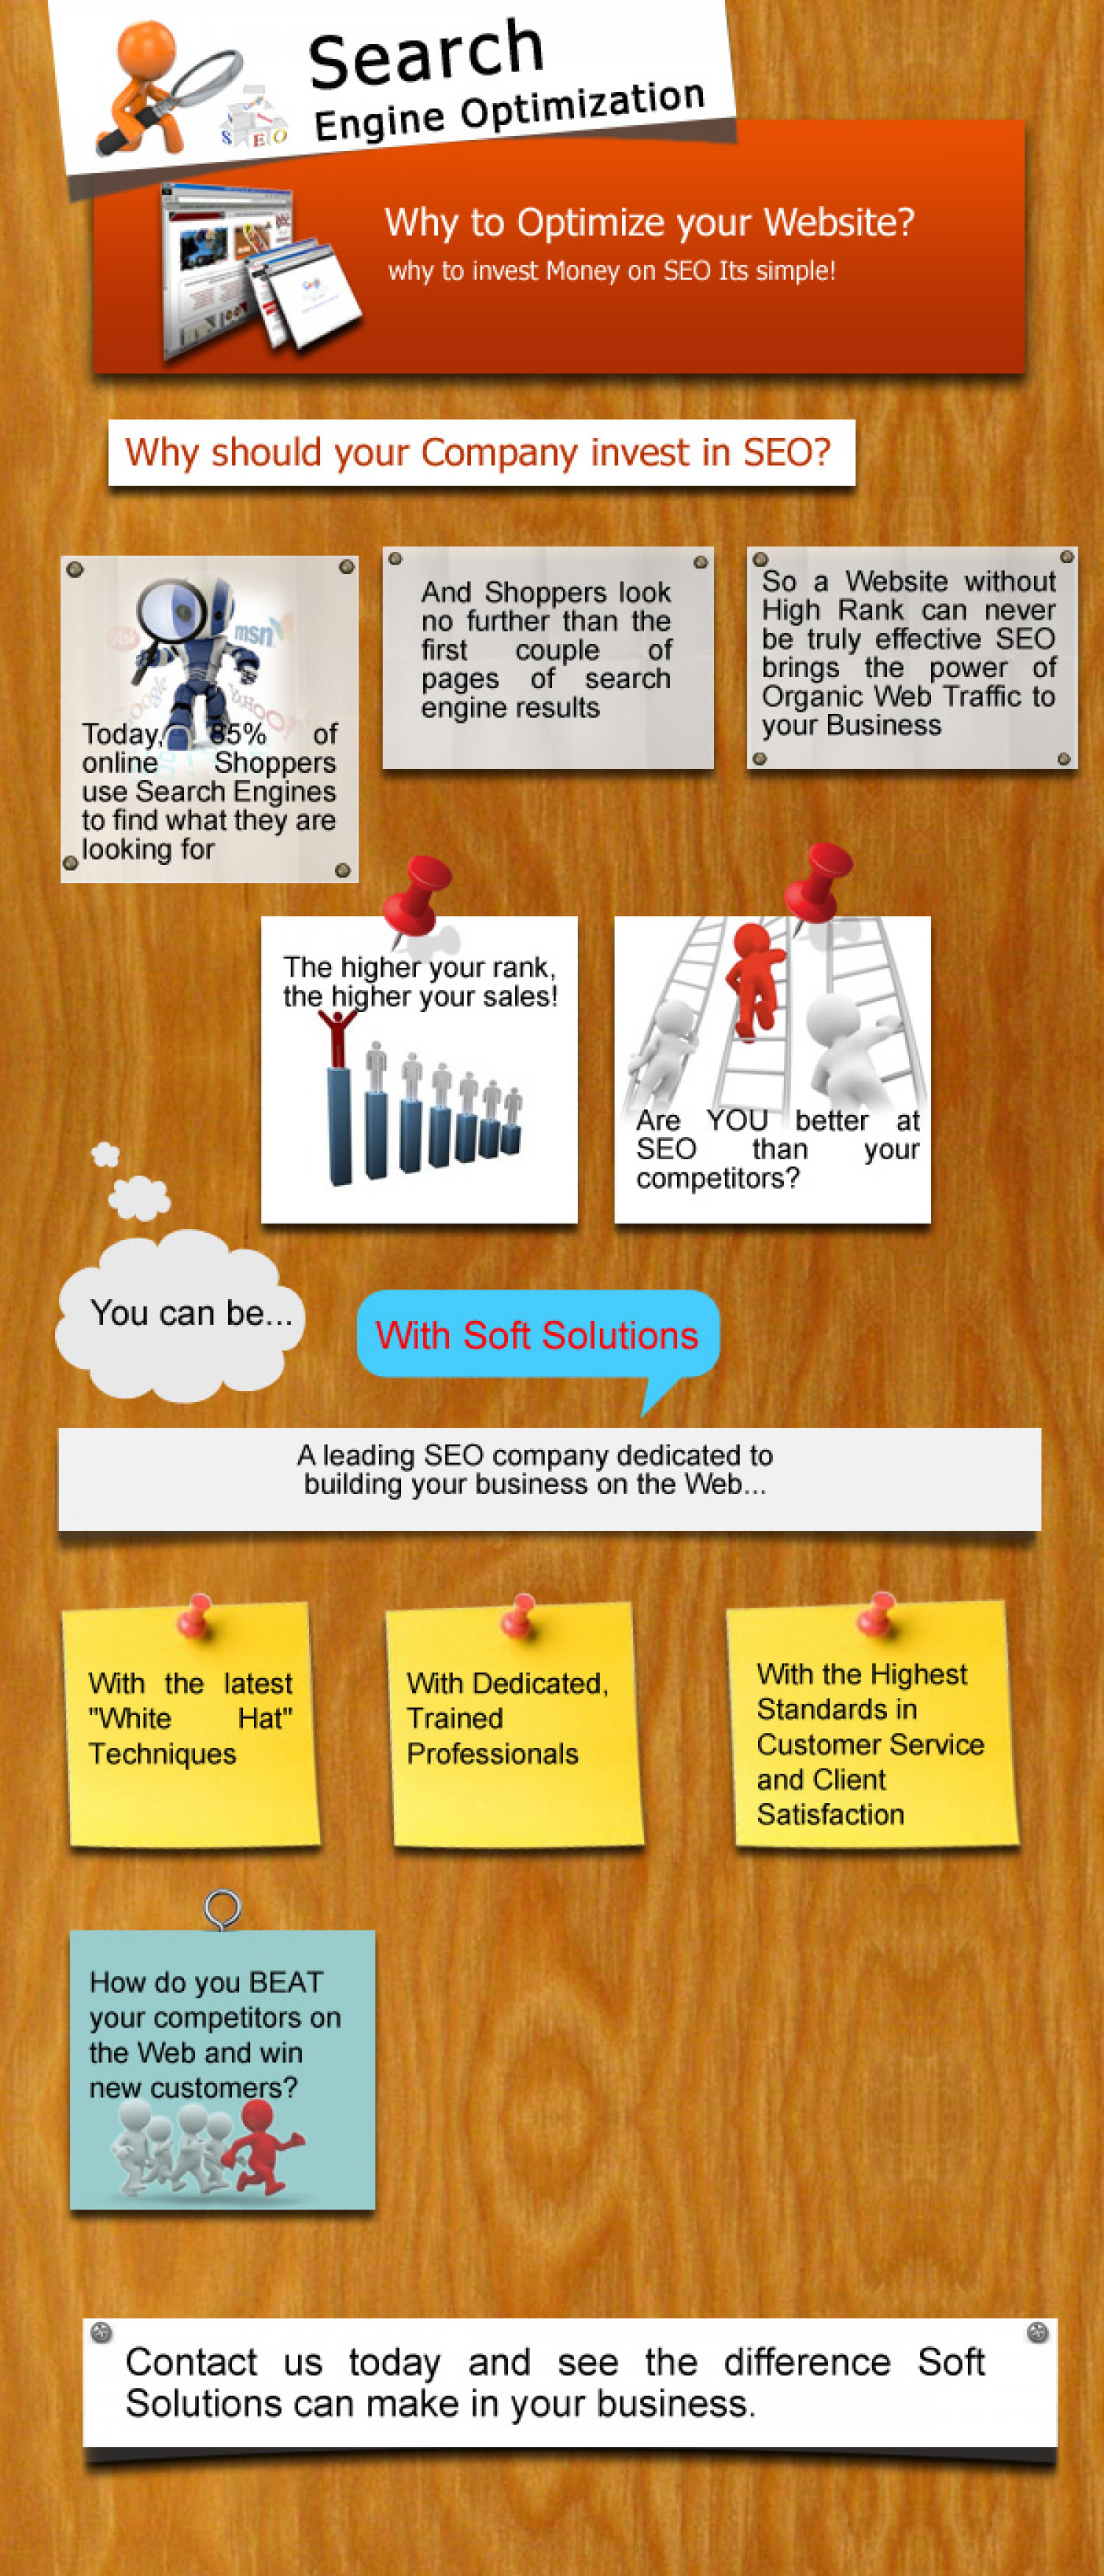 Softsolutions Infographic